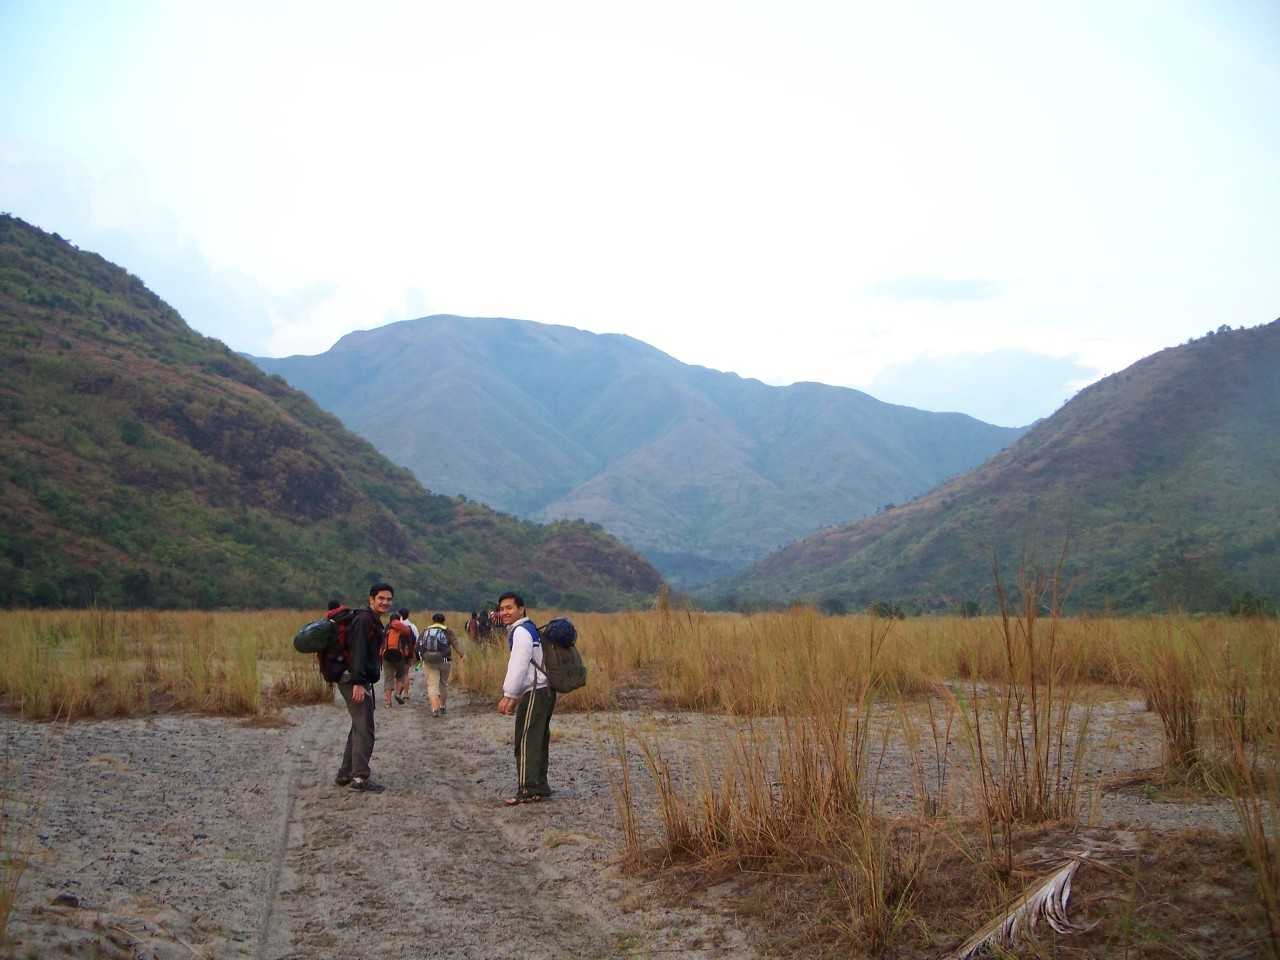 superbart:  Start of an overnight traverse at Pundaquit, Zambales to get to Anawangin Cove. April 2, 2008.  wow! this shot was over 5 years ago. This is me and a friend. we're colleagues now. ang bilis ng panahon. ;)